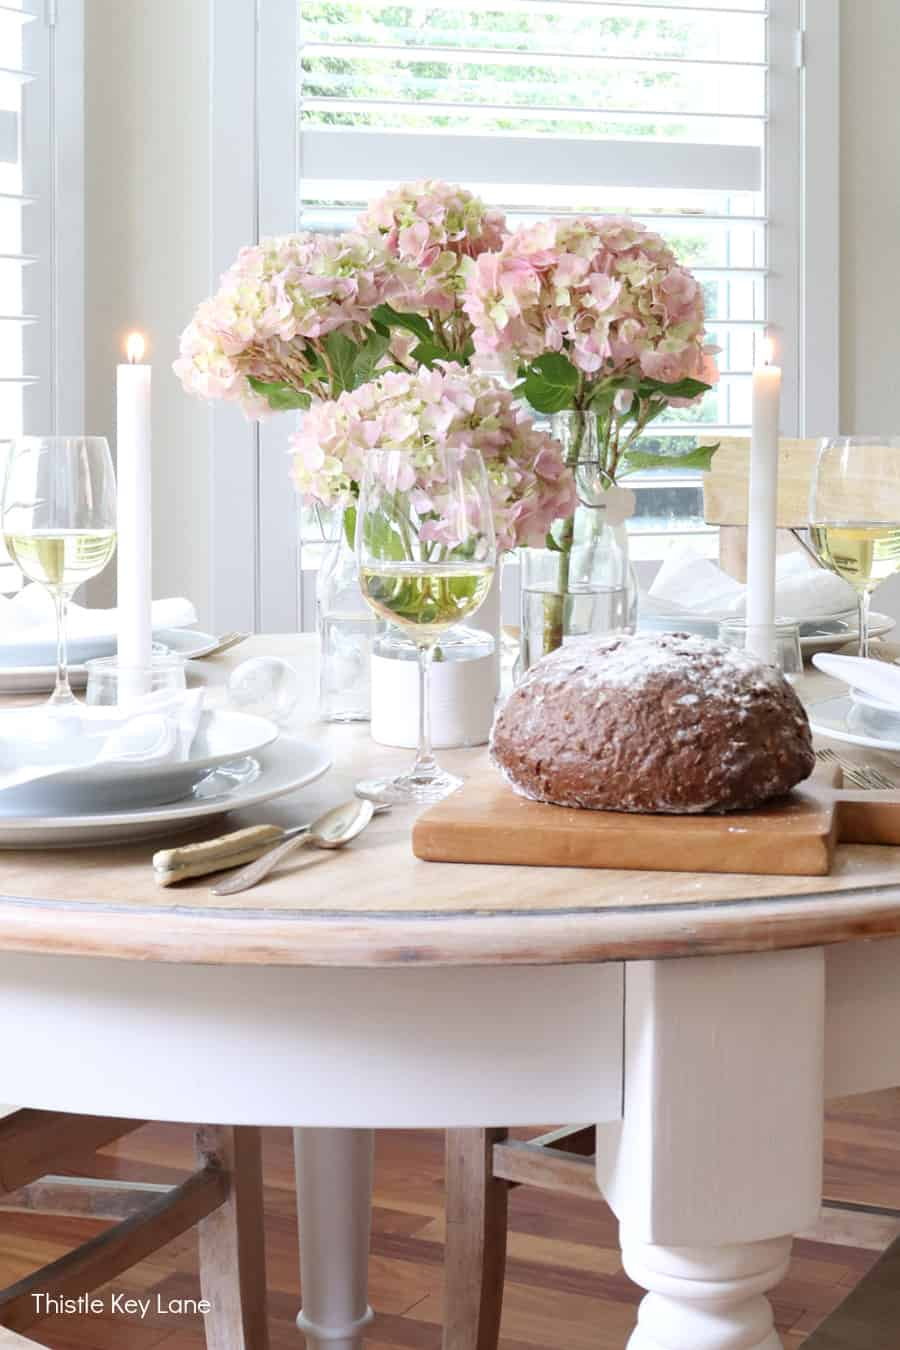 Tablescape with pink and green hydrangeas on a white and neutral table. Summer Tablescape With Glass Bottle Vase.